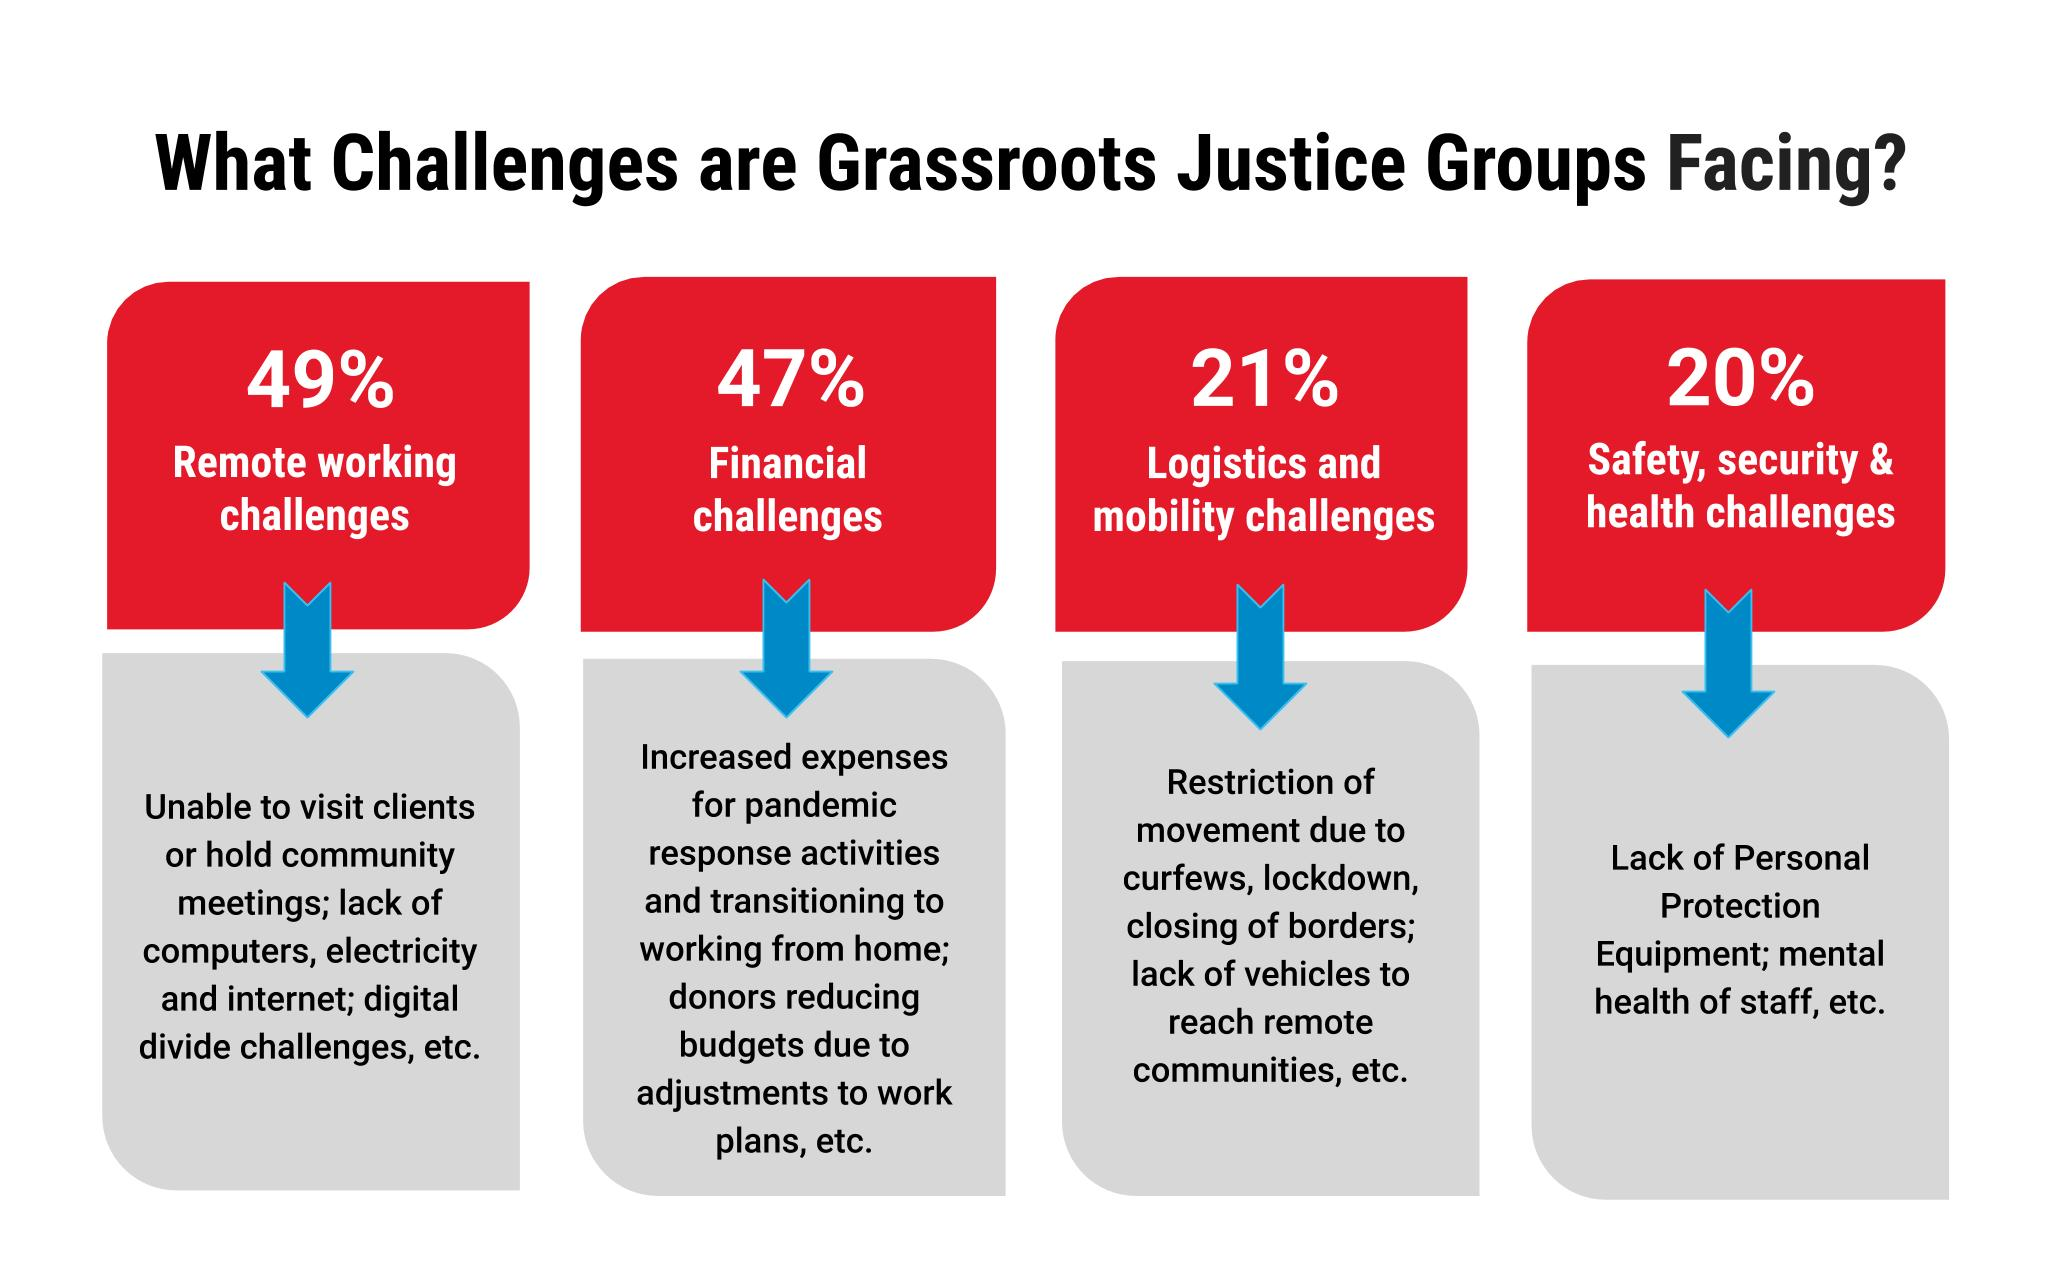 What Challenges are Grassroots Justice Groups Facing